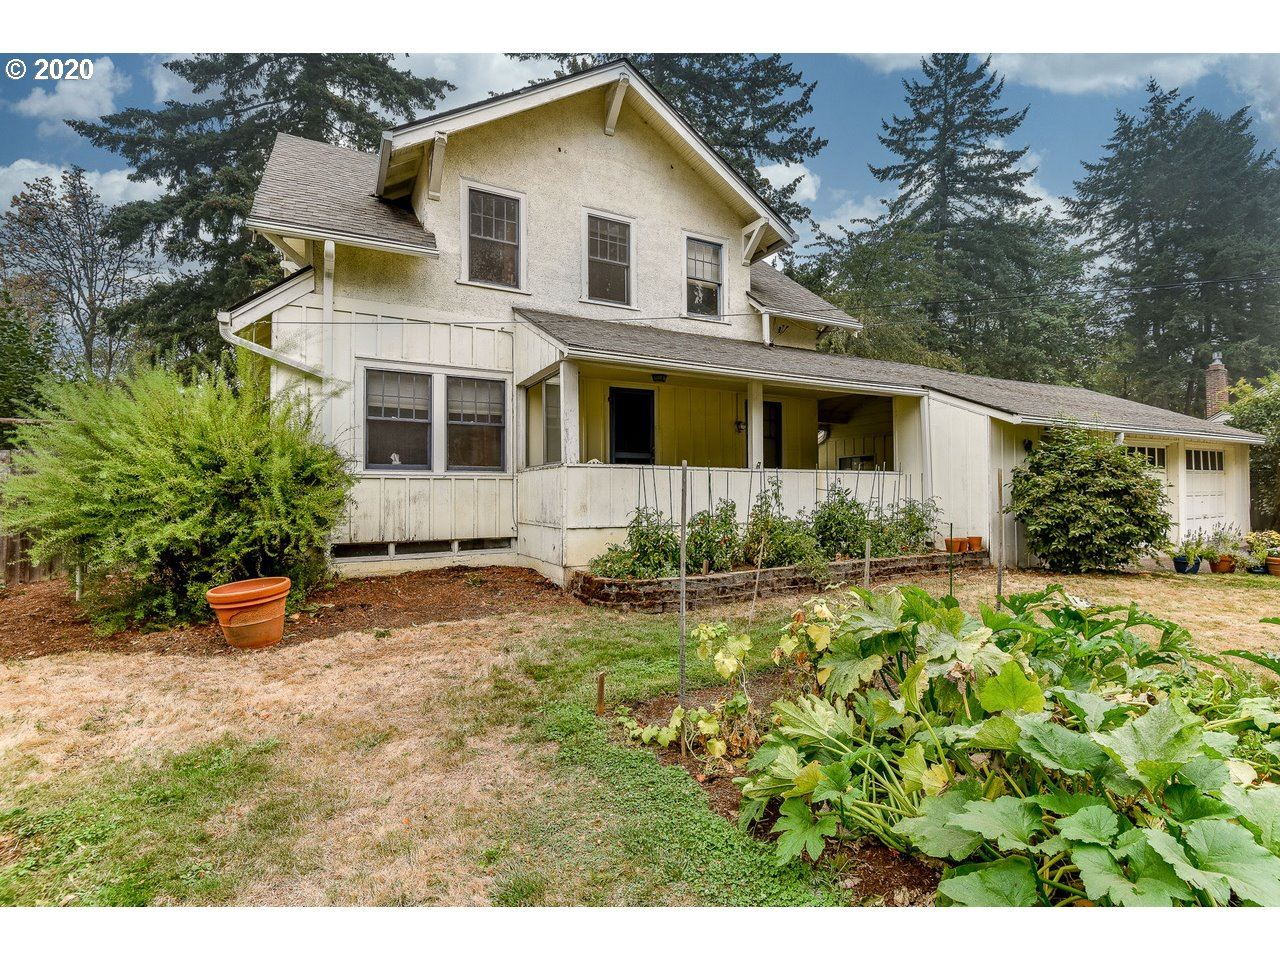 4115 SW FAIRVALE DR, Portland, OR 97221 - MLS#: 20216452